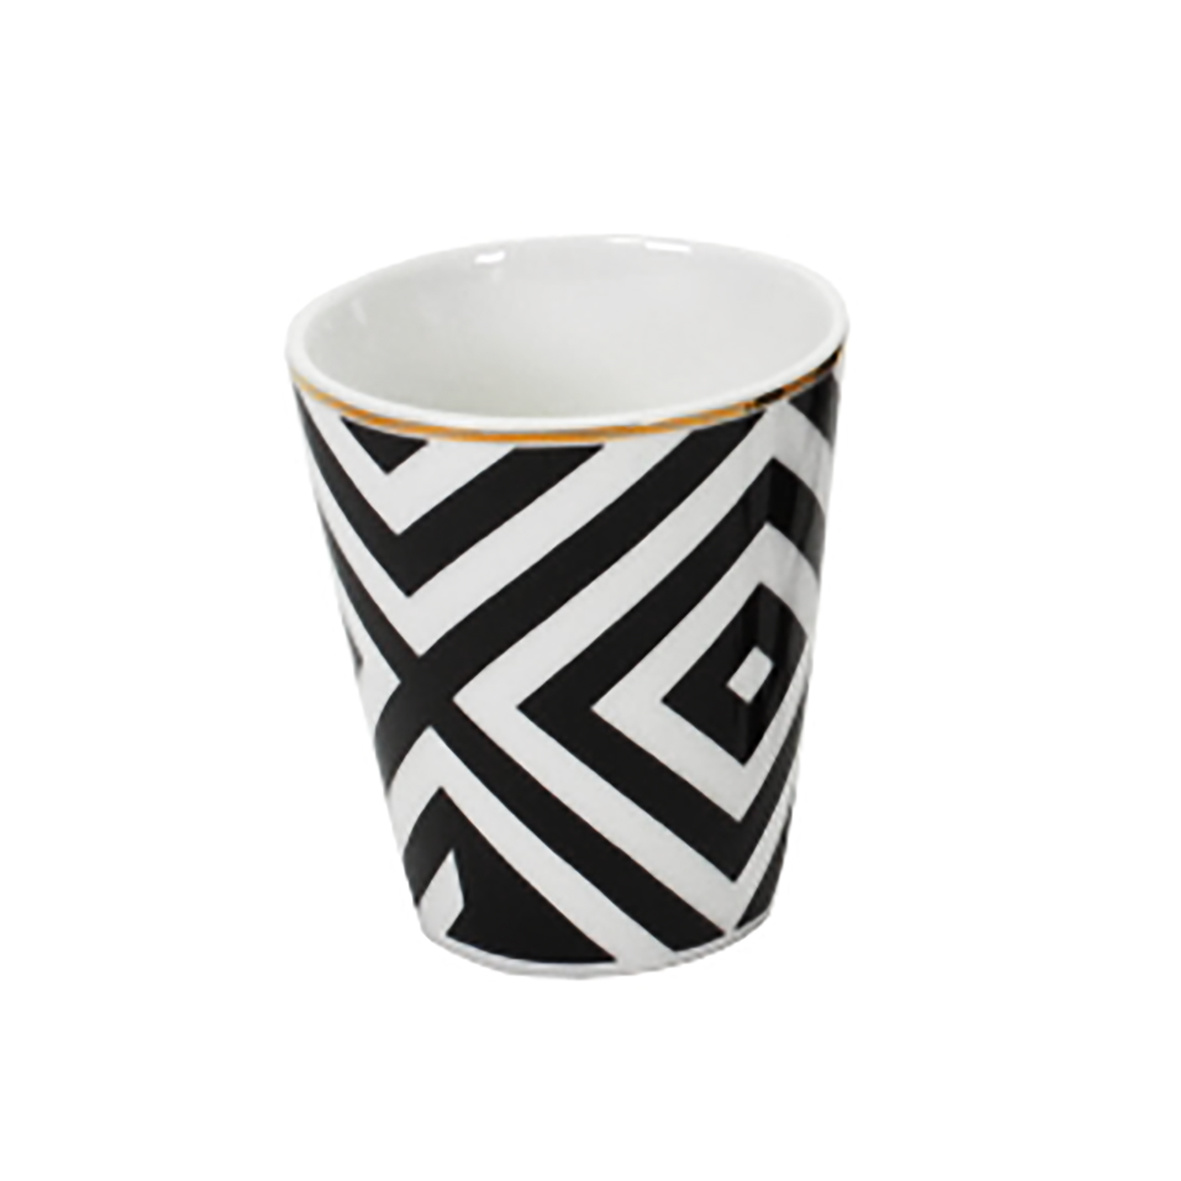 Modern design espresso cup with black and white print